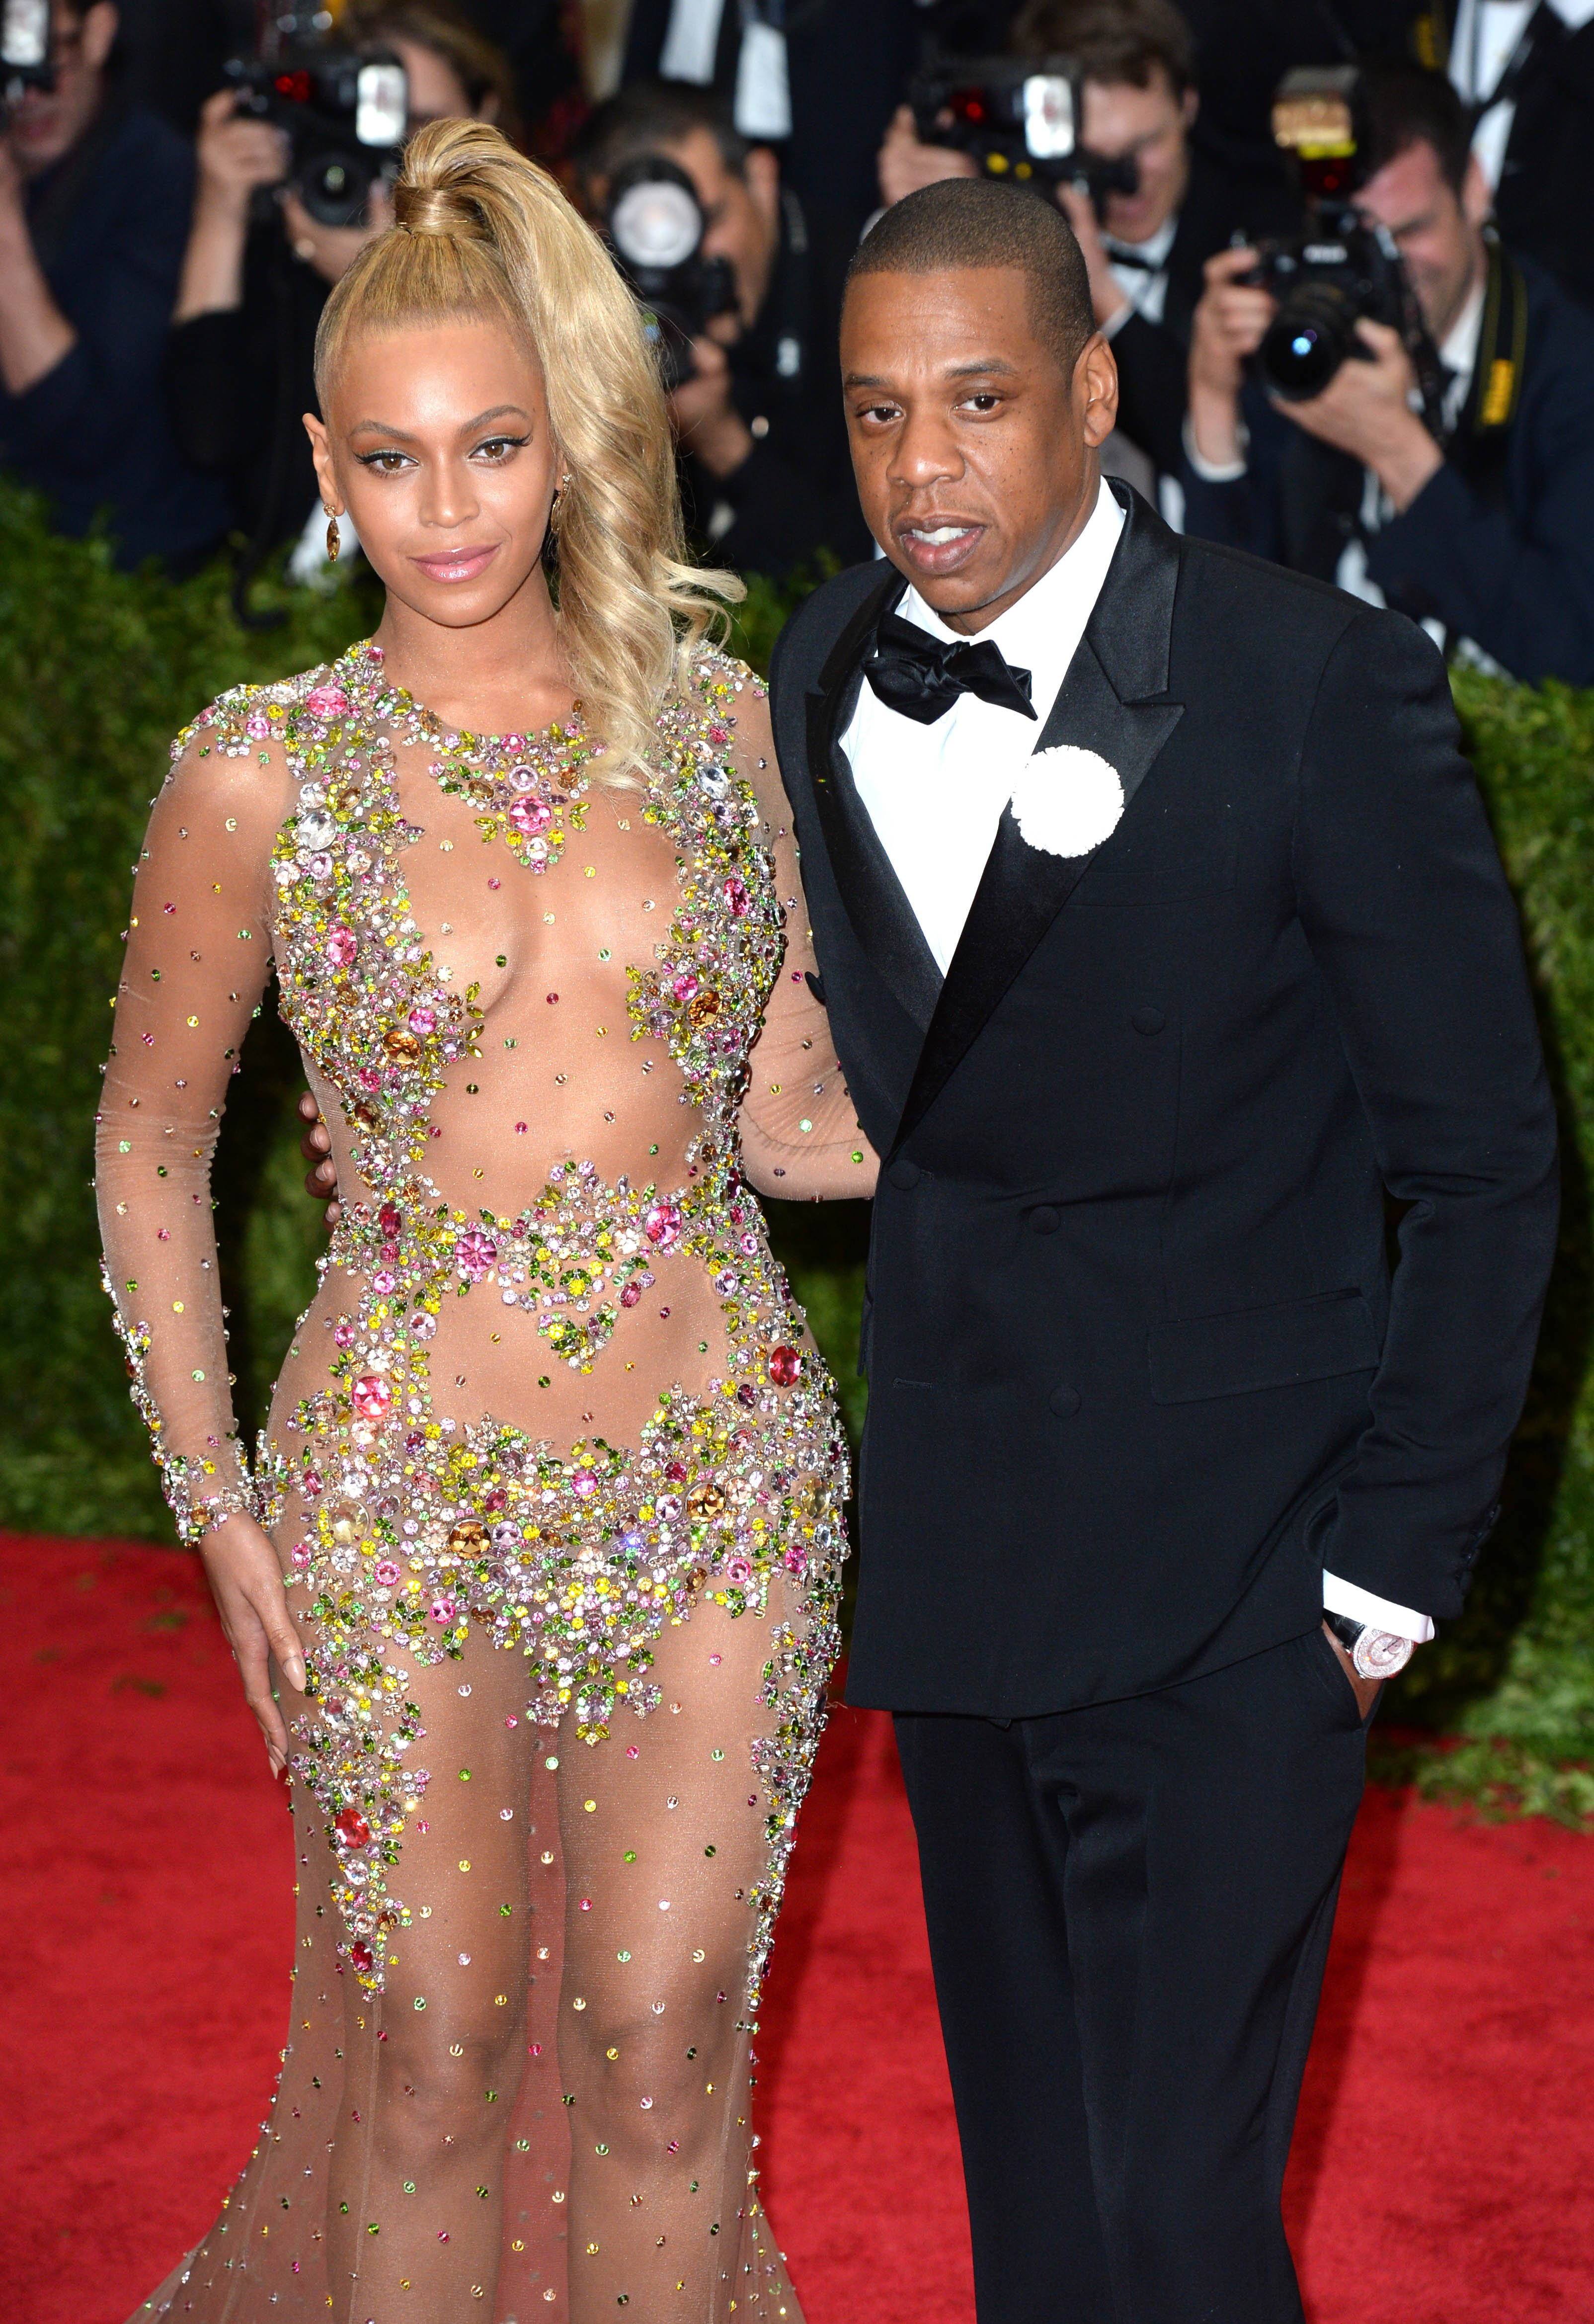 Beyonce and Jay-Z attending The Metropolitan Museum of Art Met Gala, in New York City, USA.  (Mandatory Credit: Doug Peters/EMPICS Entertainment), Image: 242273826, License: Rights-managed, Restrictions: NONE, Model Release: no, Credit line: Profimedia, Press Association